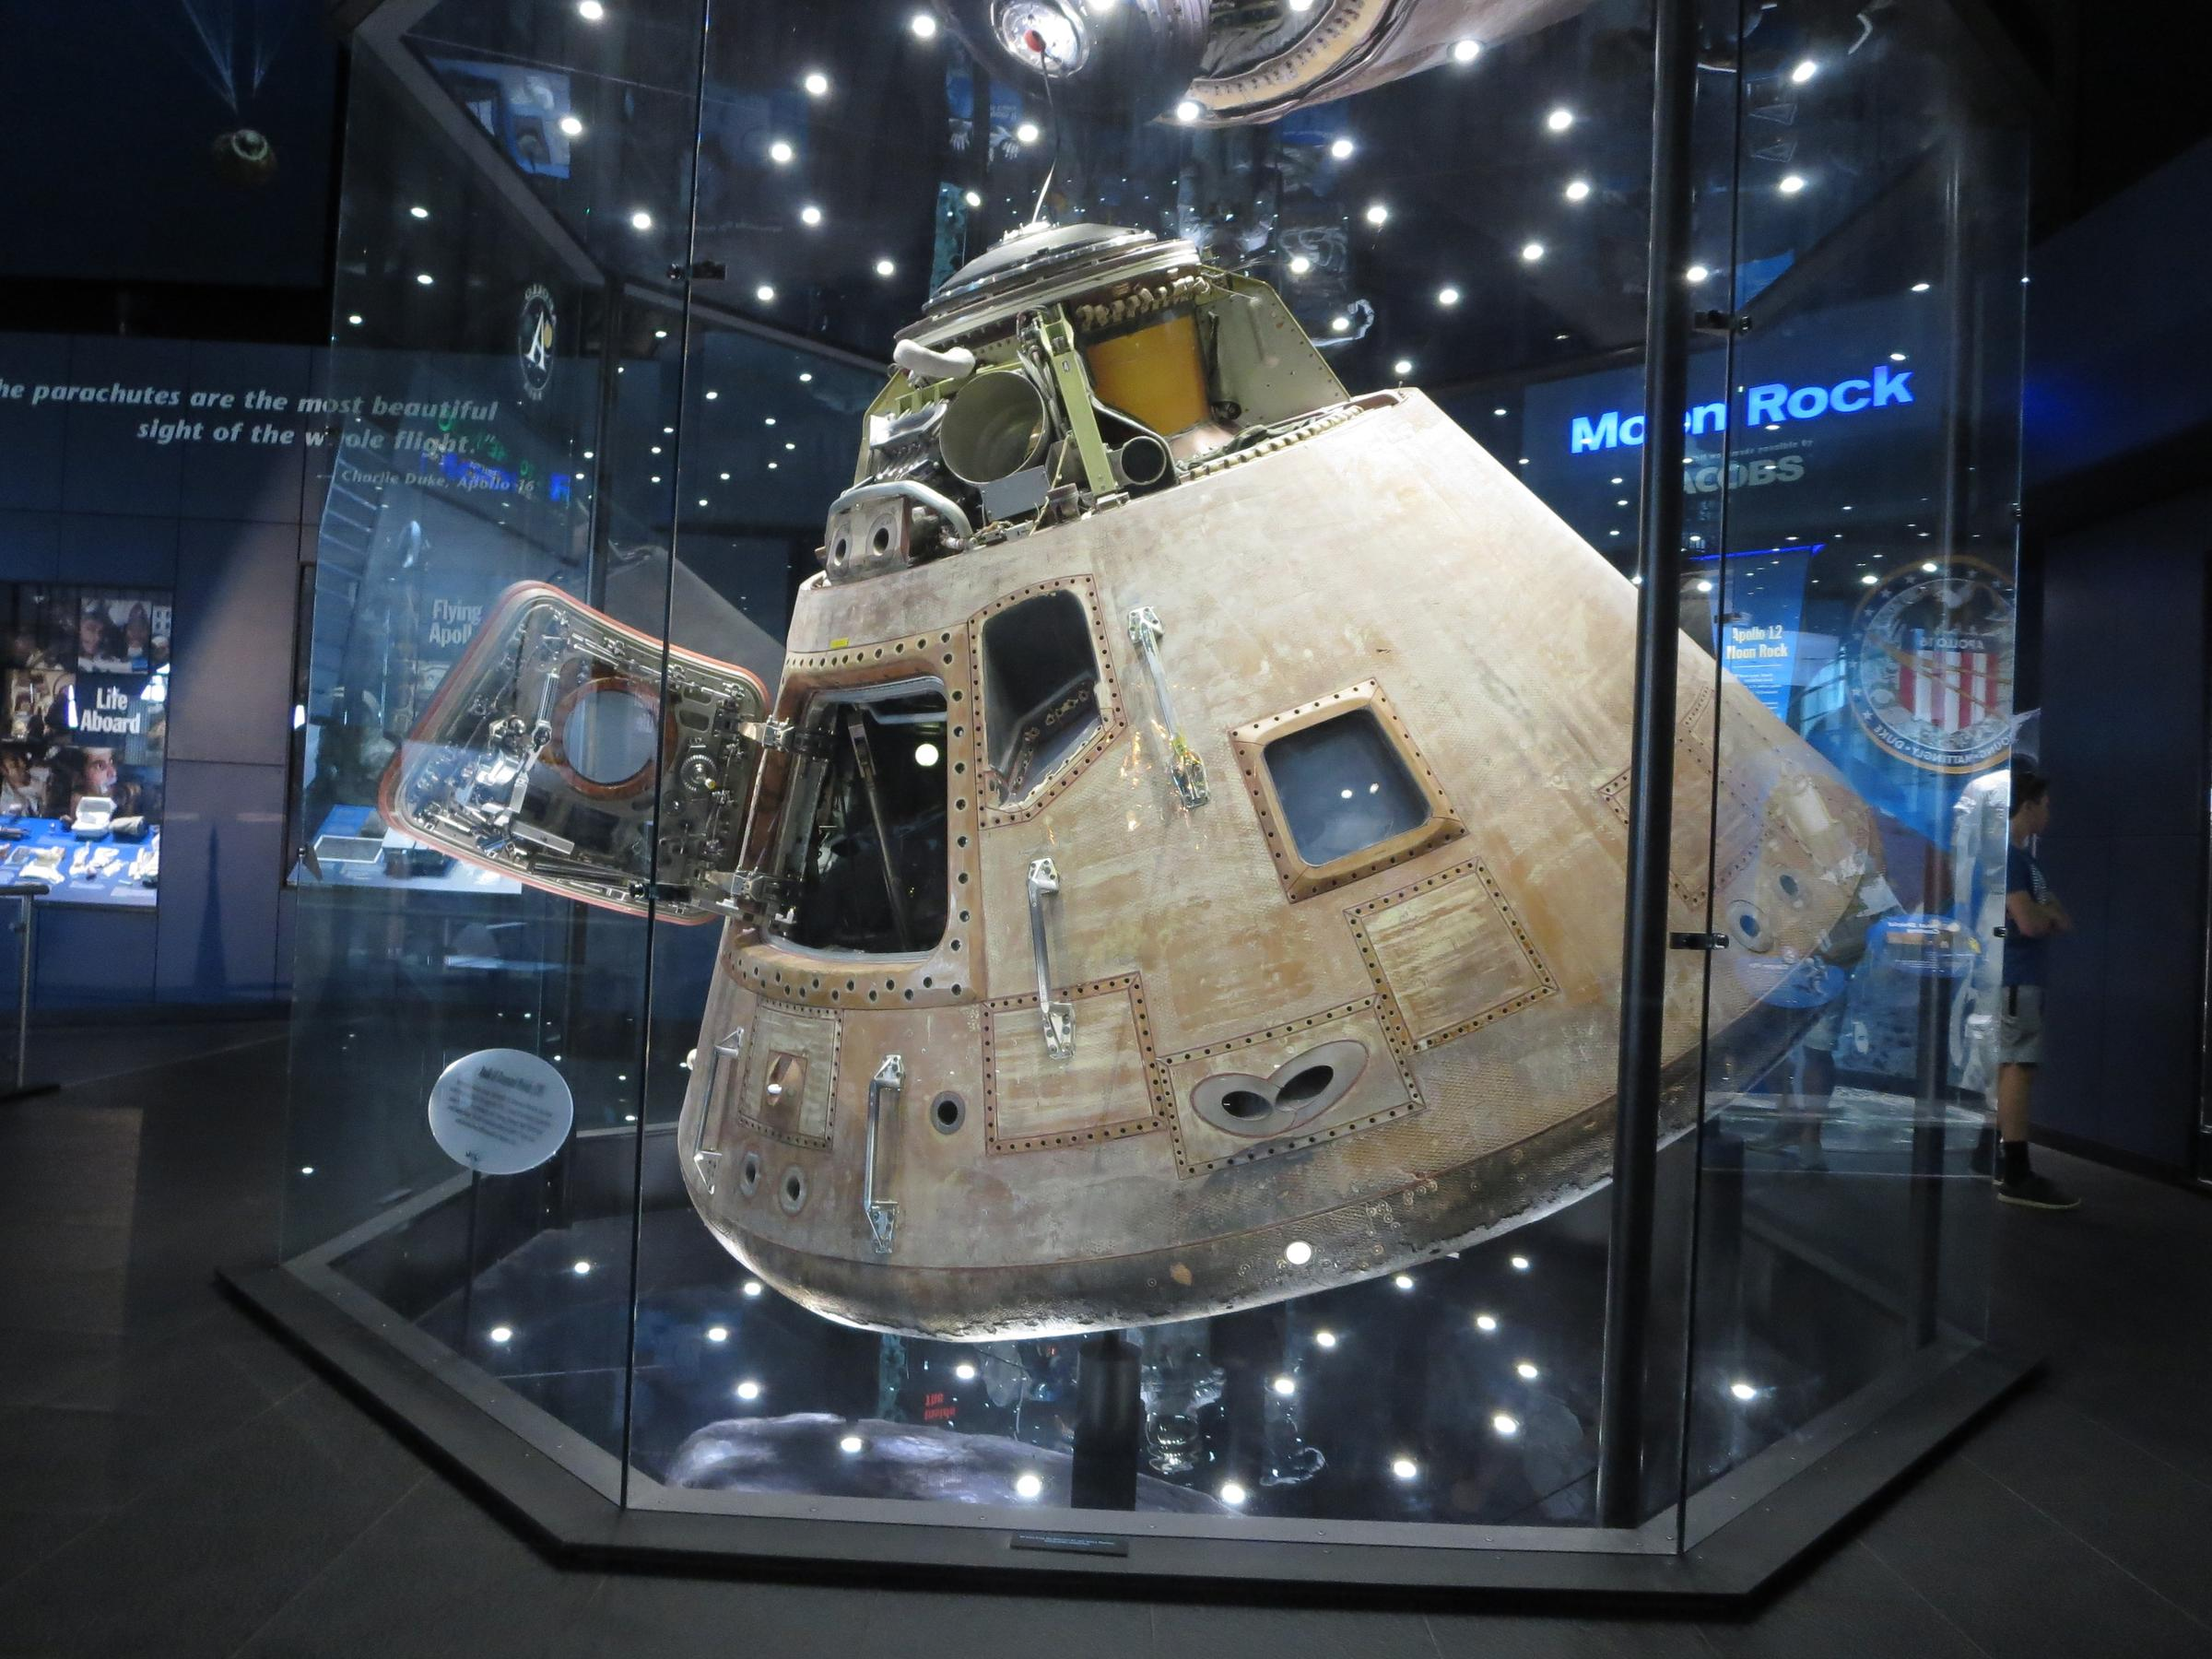 Neil Armstrong's Apollo 11 spacesuit unveiled at Smithsonian